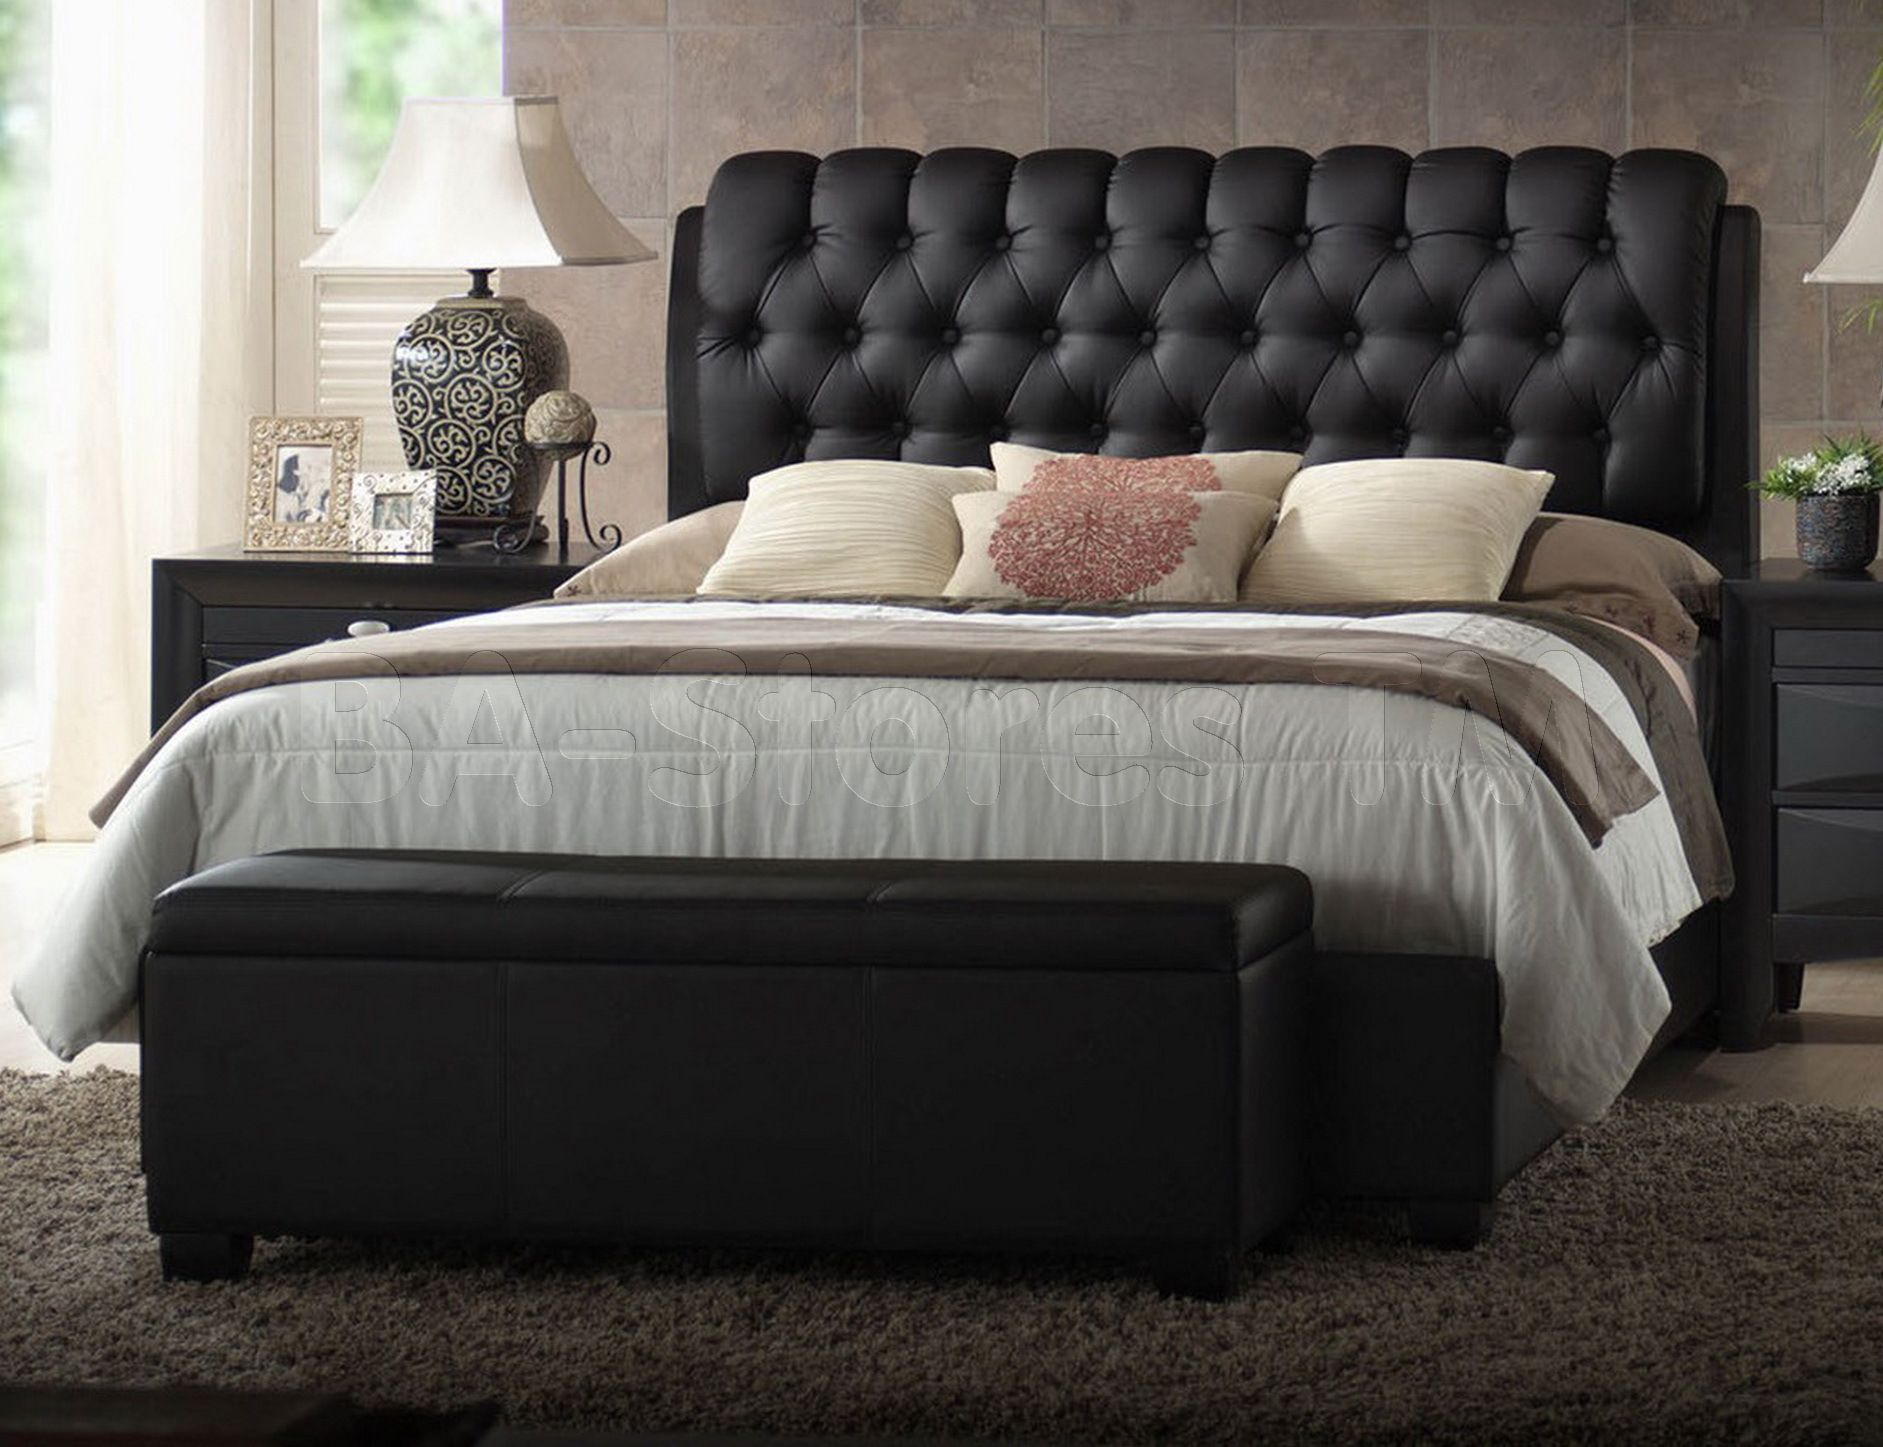 Contemporary Bedroom Set London Black By Acme Furniture: King Size Tufted Headboard With Contemporary Jazmin Tufted